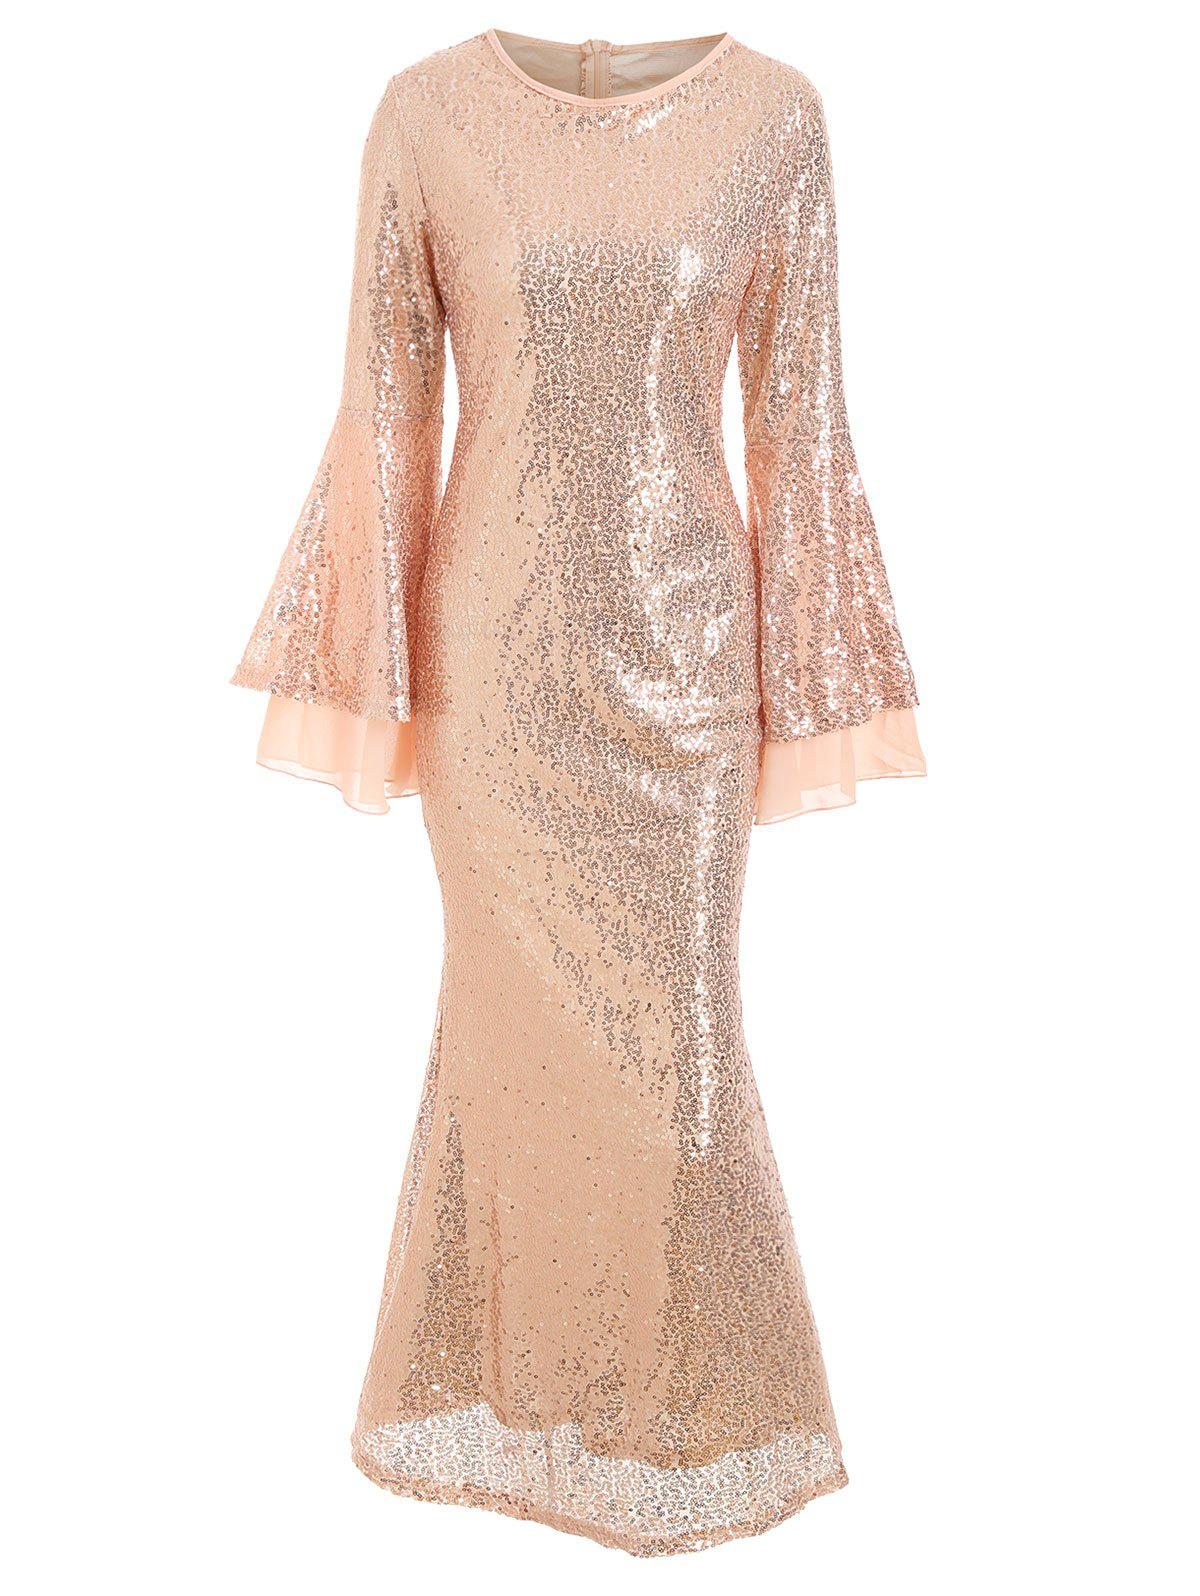 Flare Sleeves Sequined A Line Sparkly Maxi Dress - CHAMPAGNE GOLD L